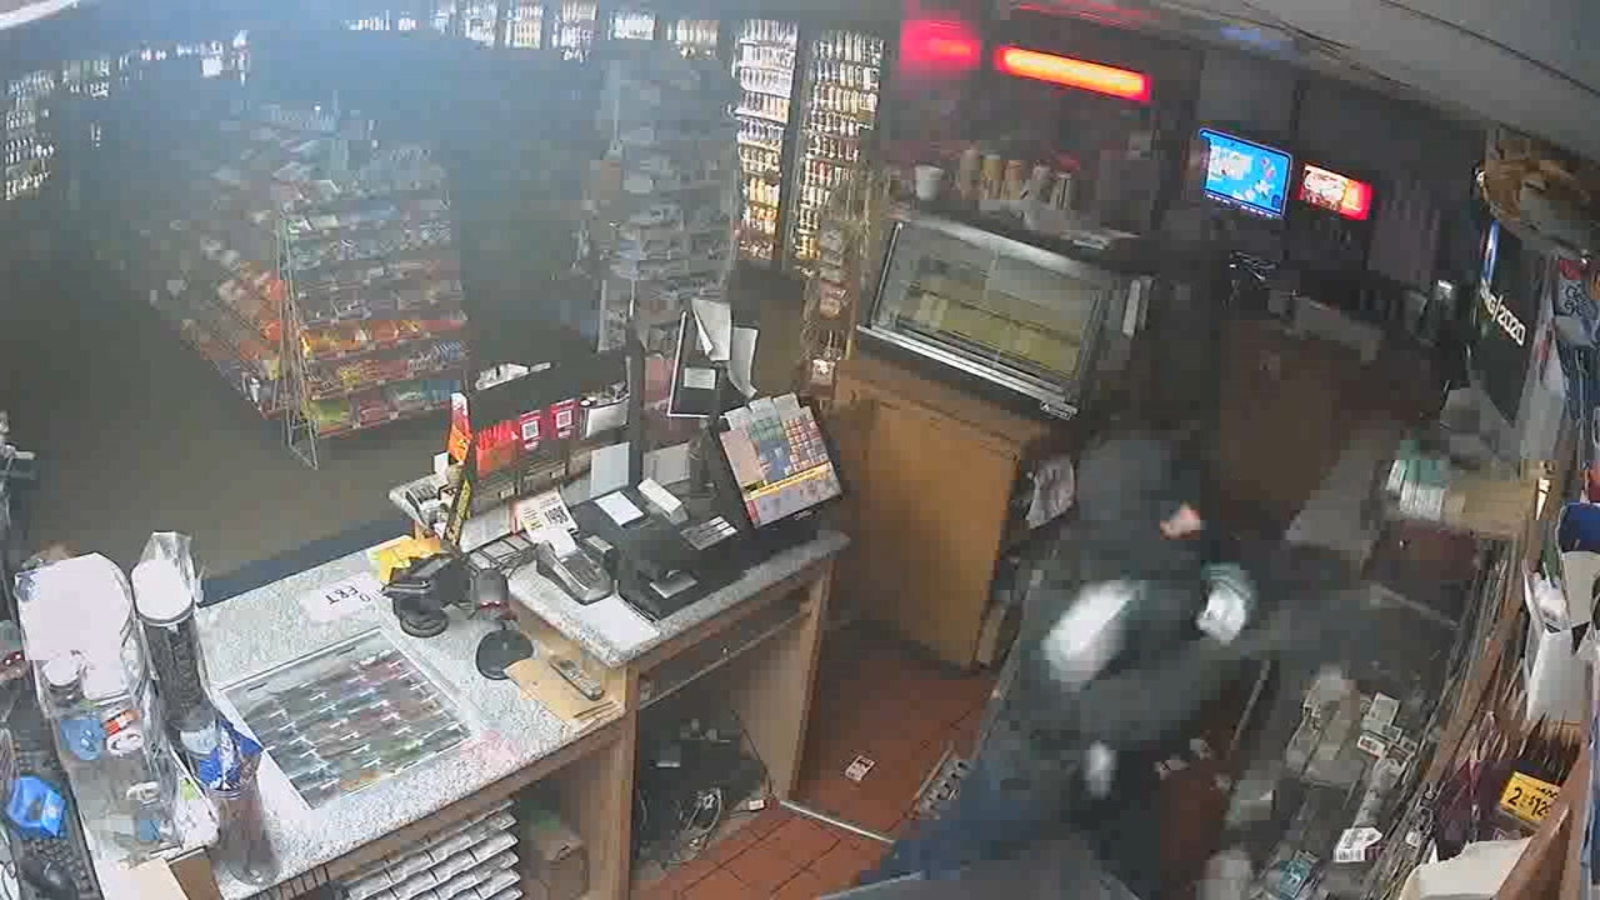 Brazen tobacco thieves, believed to be part of larger operation, strike Fresno County gas station